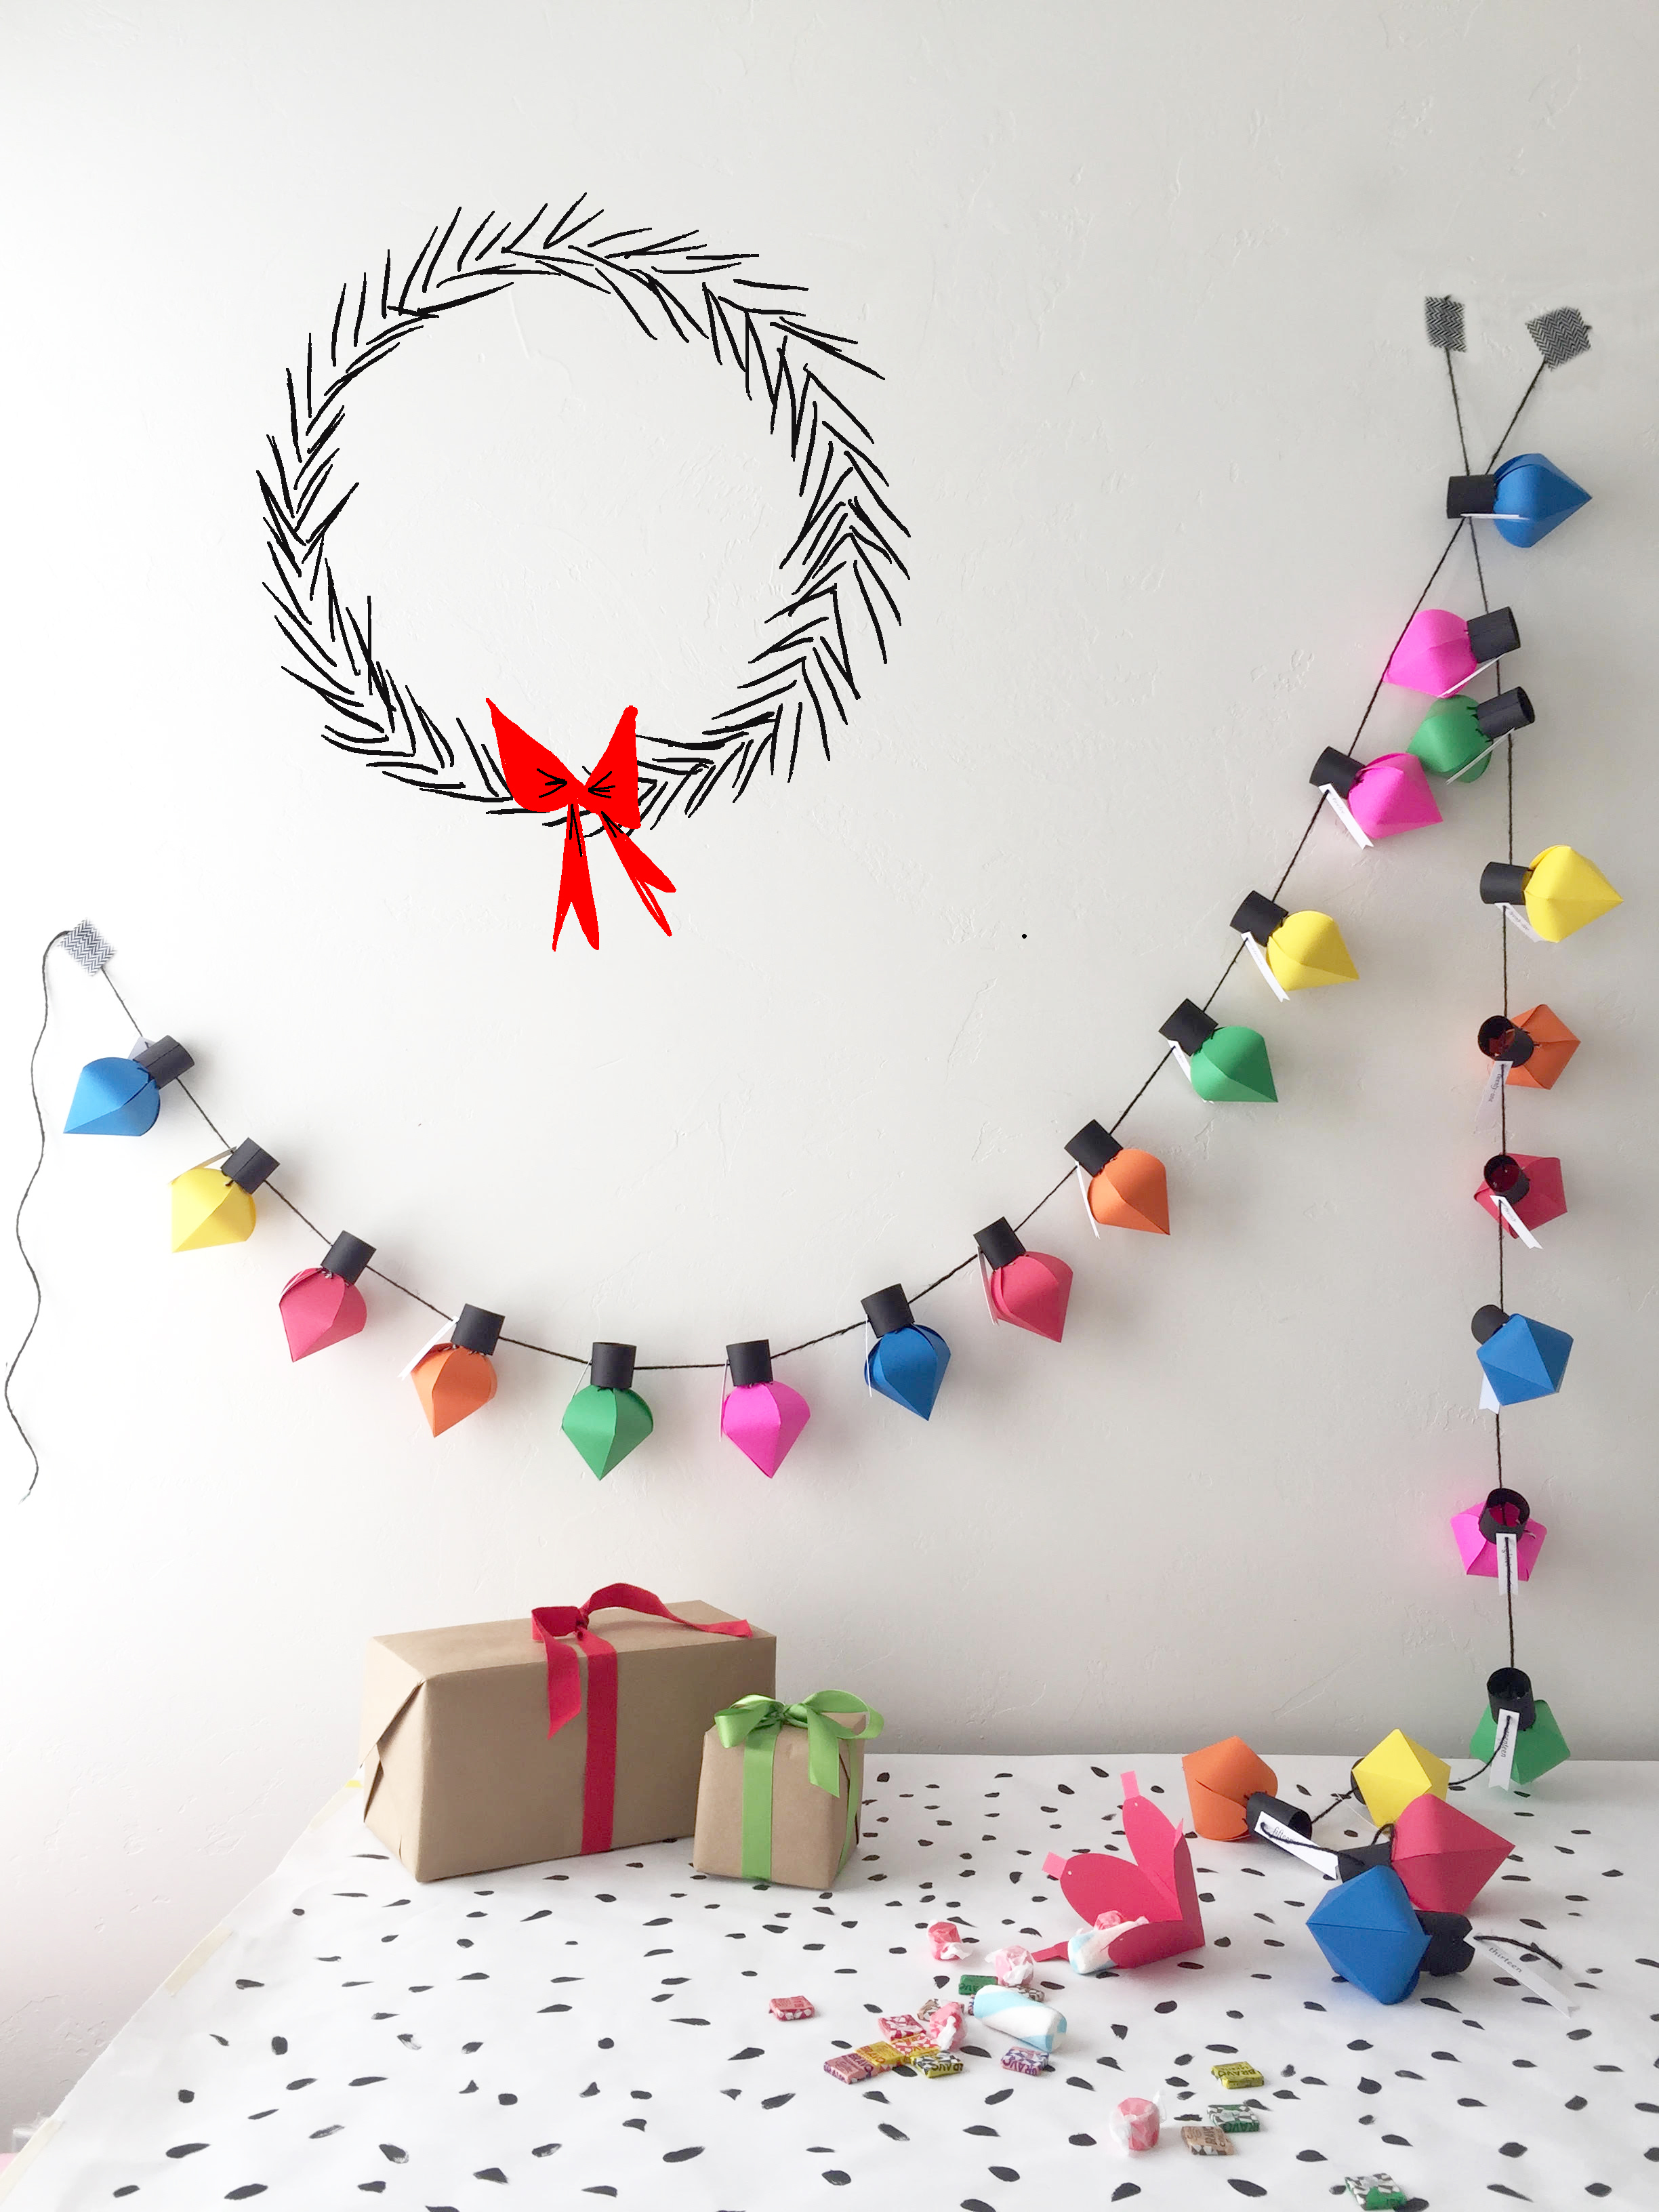 Top 10 Colourful DIY Advent Calendars - Image by The House That Lars Built on Squirrelly Minds